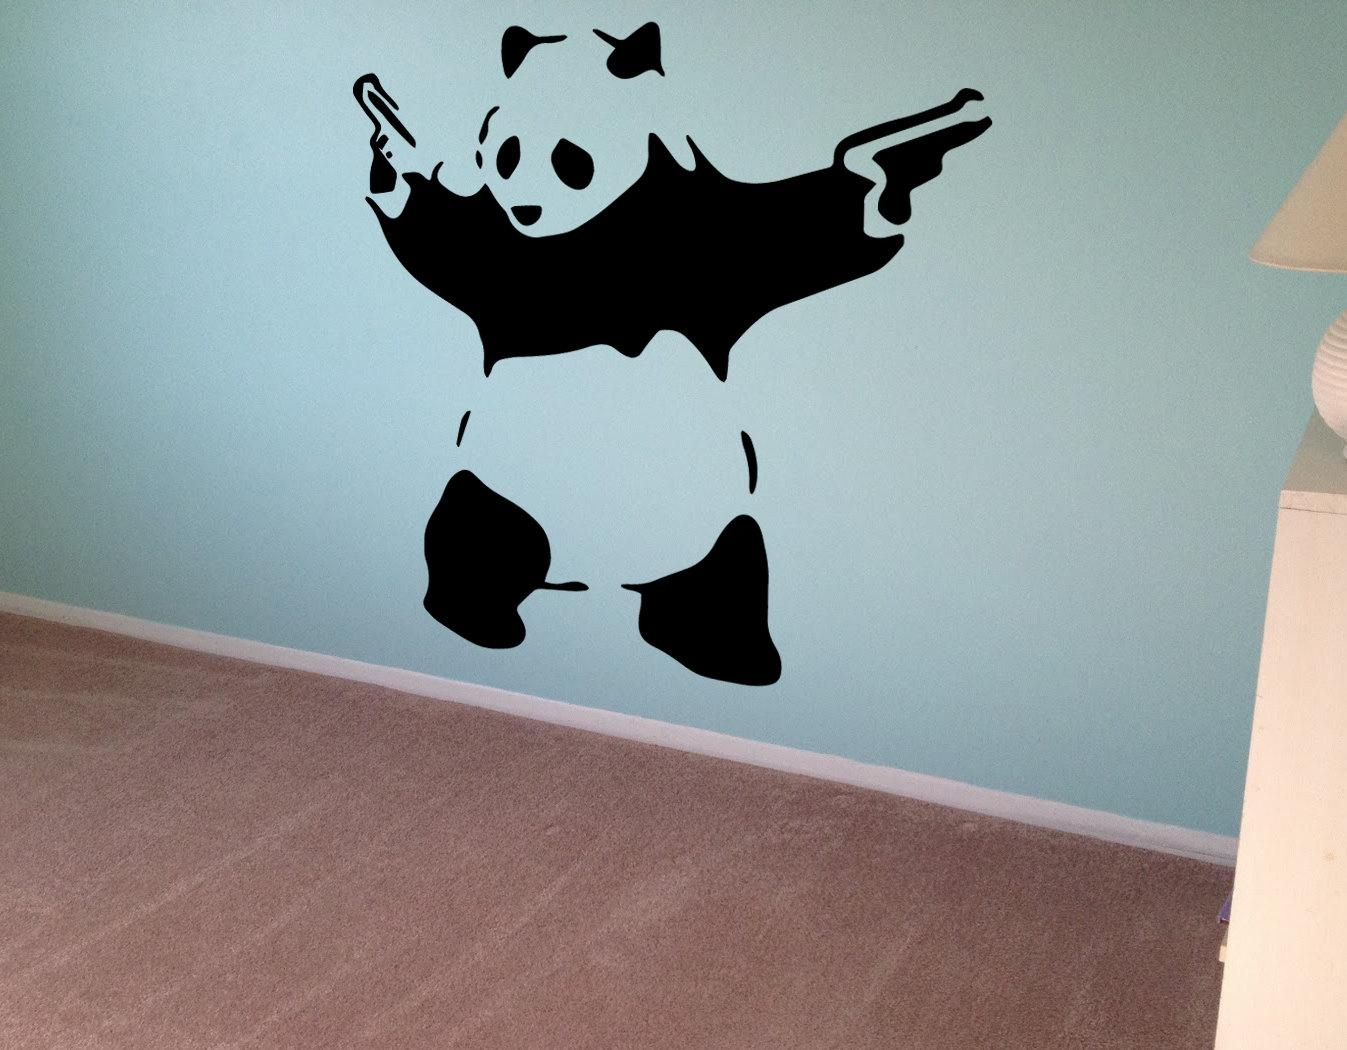 Banksy Wall Decal Panda Guns Wall Art Wall Sticker Vinyl In Graffiti Wall Art Stickers (Image 3 of 20)